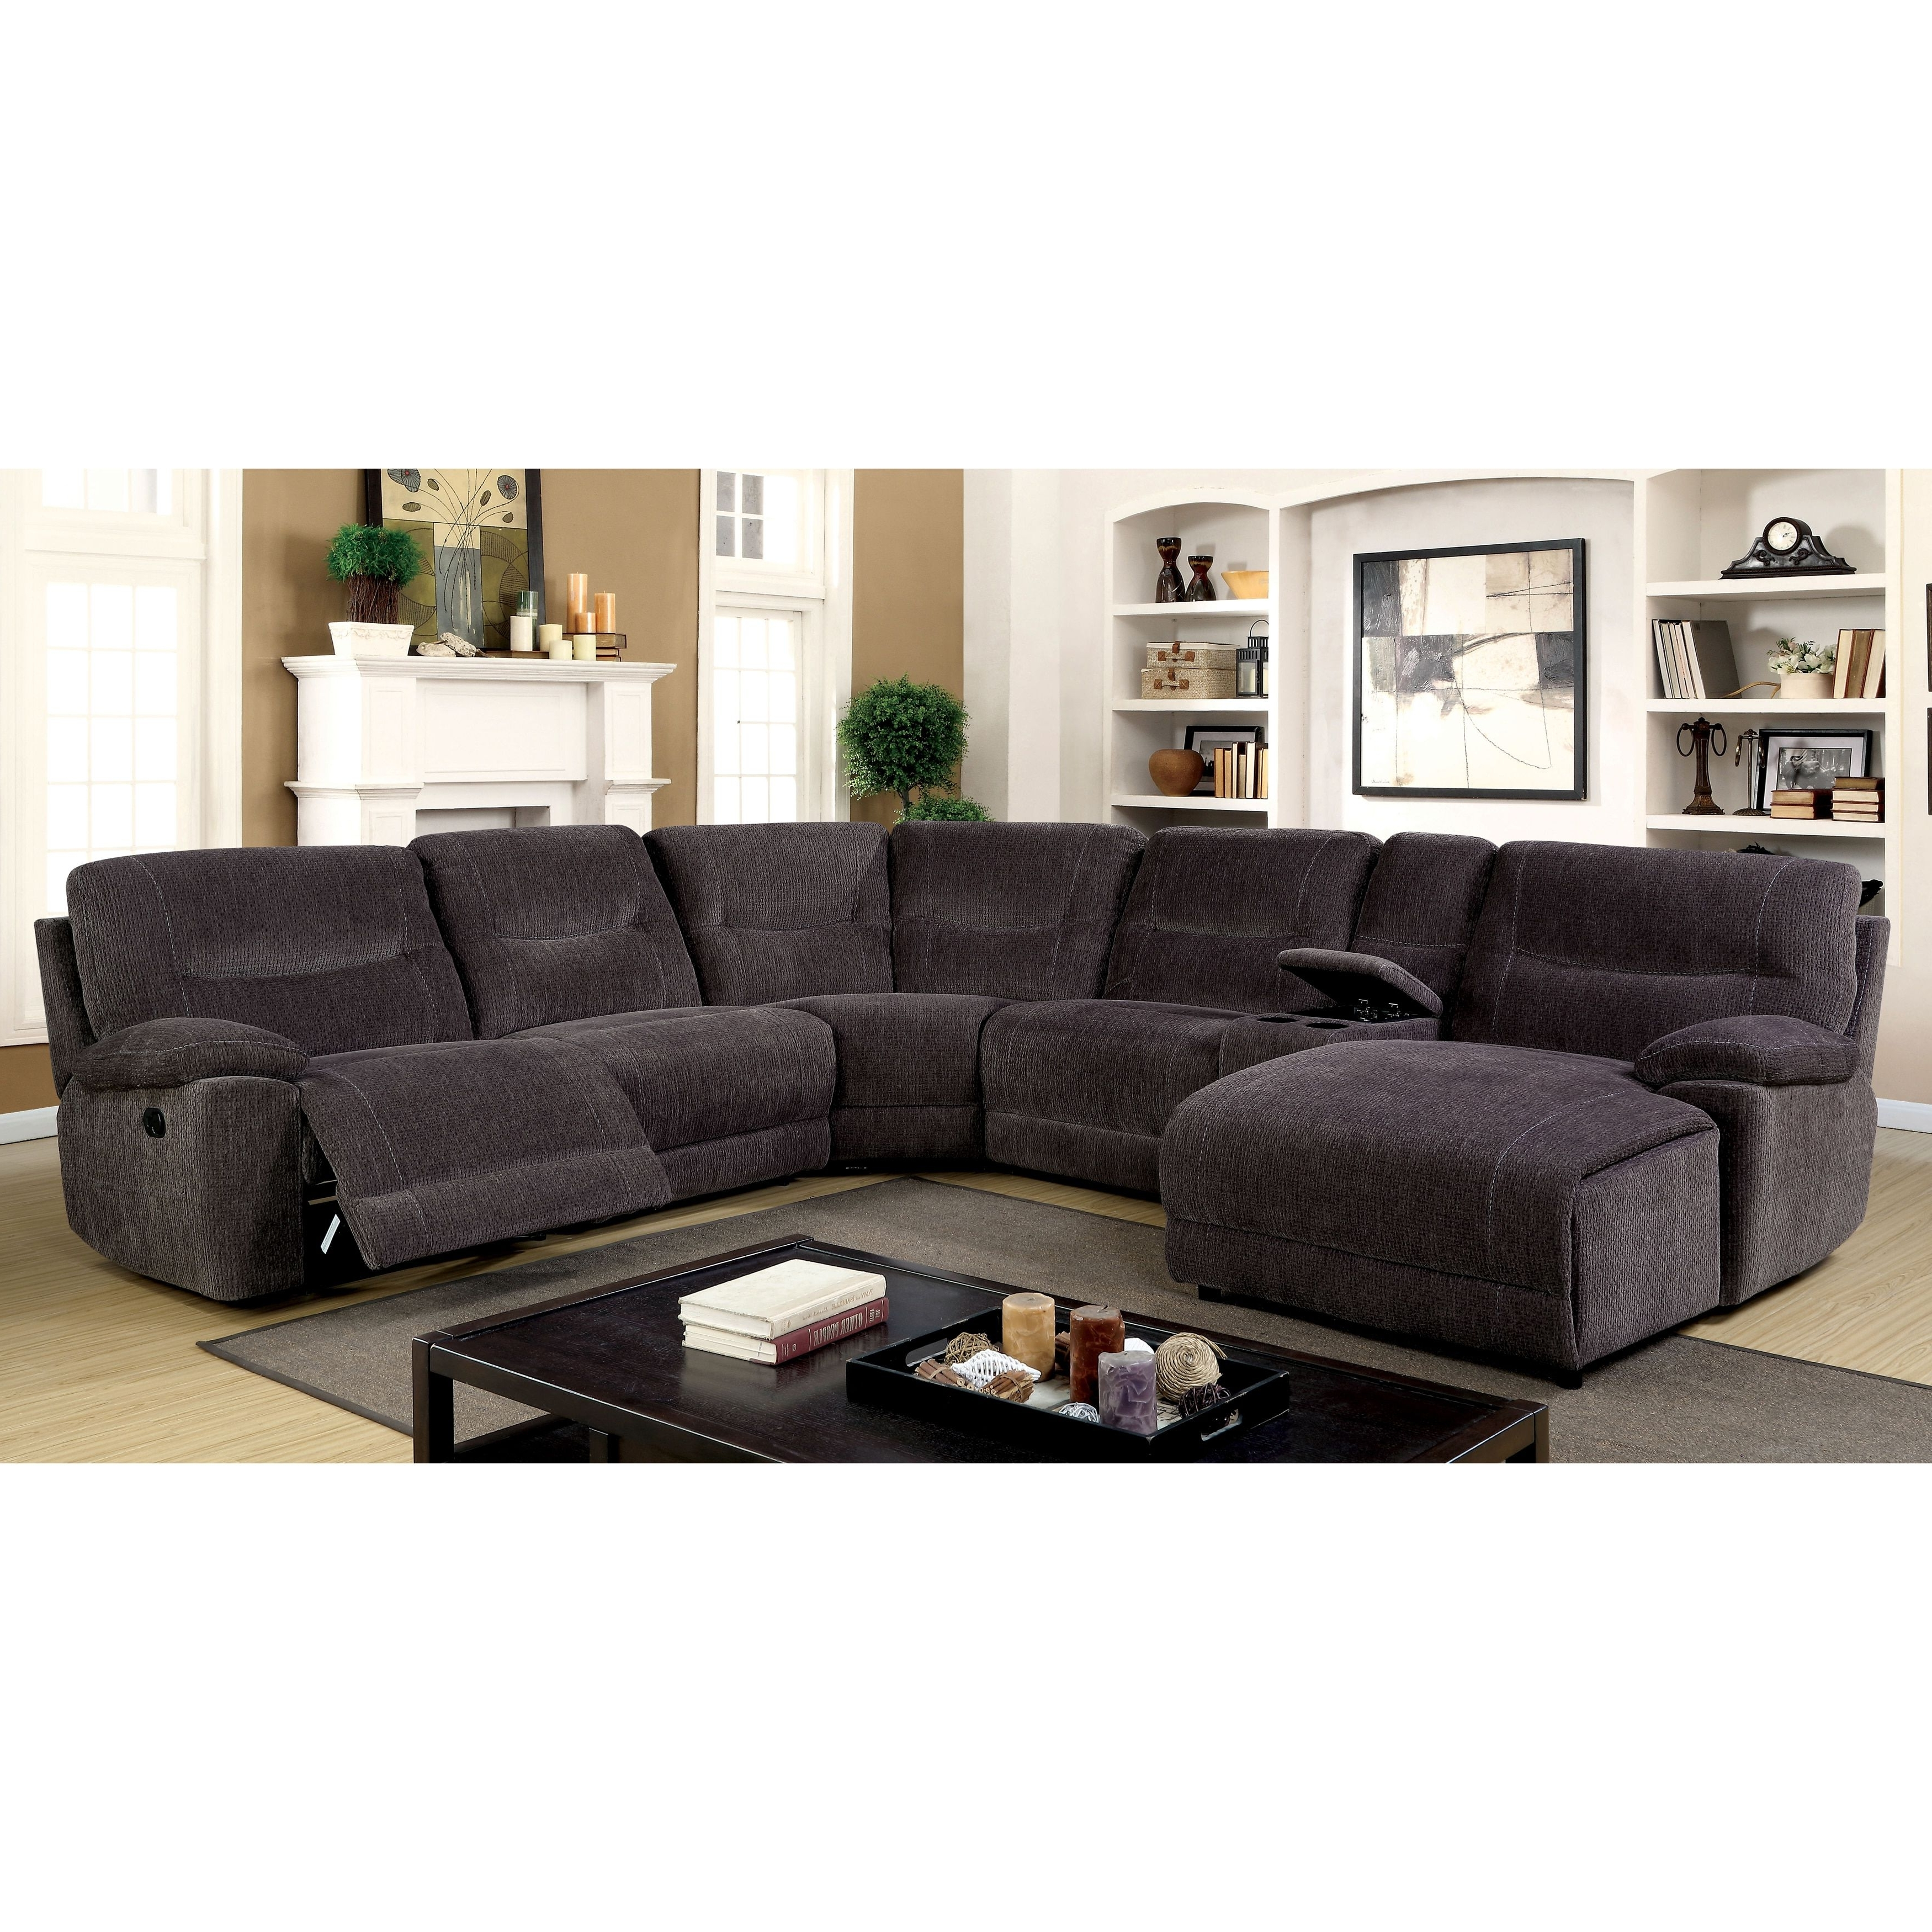 Johnson City Tn Sectional Sofas for Most Recent Furniture Of America Colen Reclining Chenille Fabric Grey L-Shaped